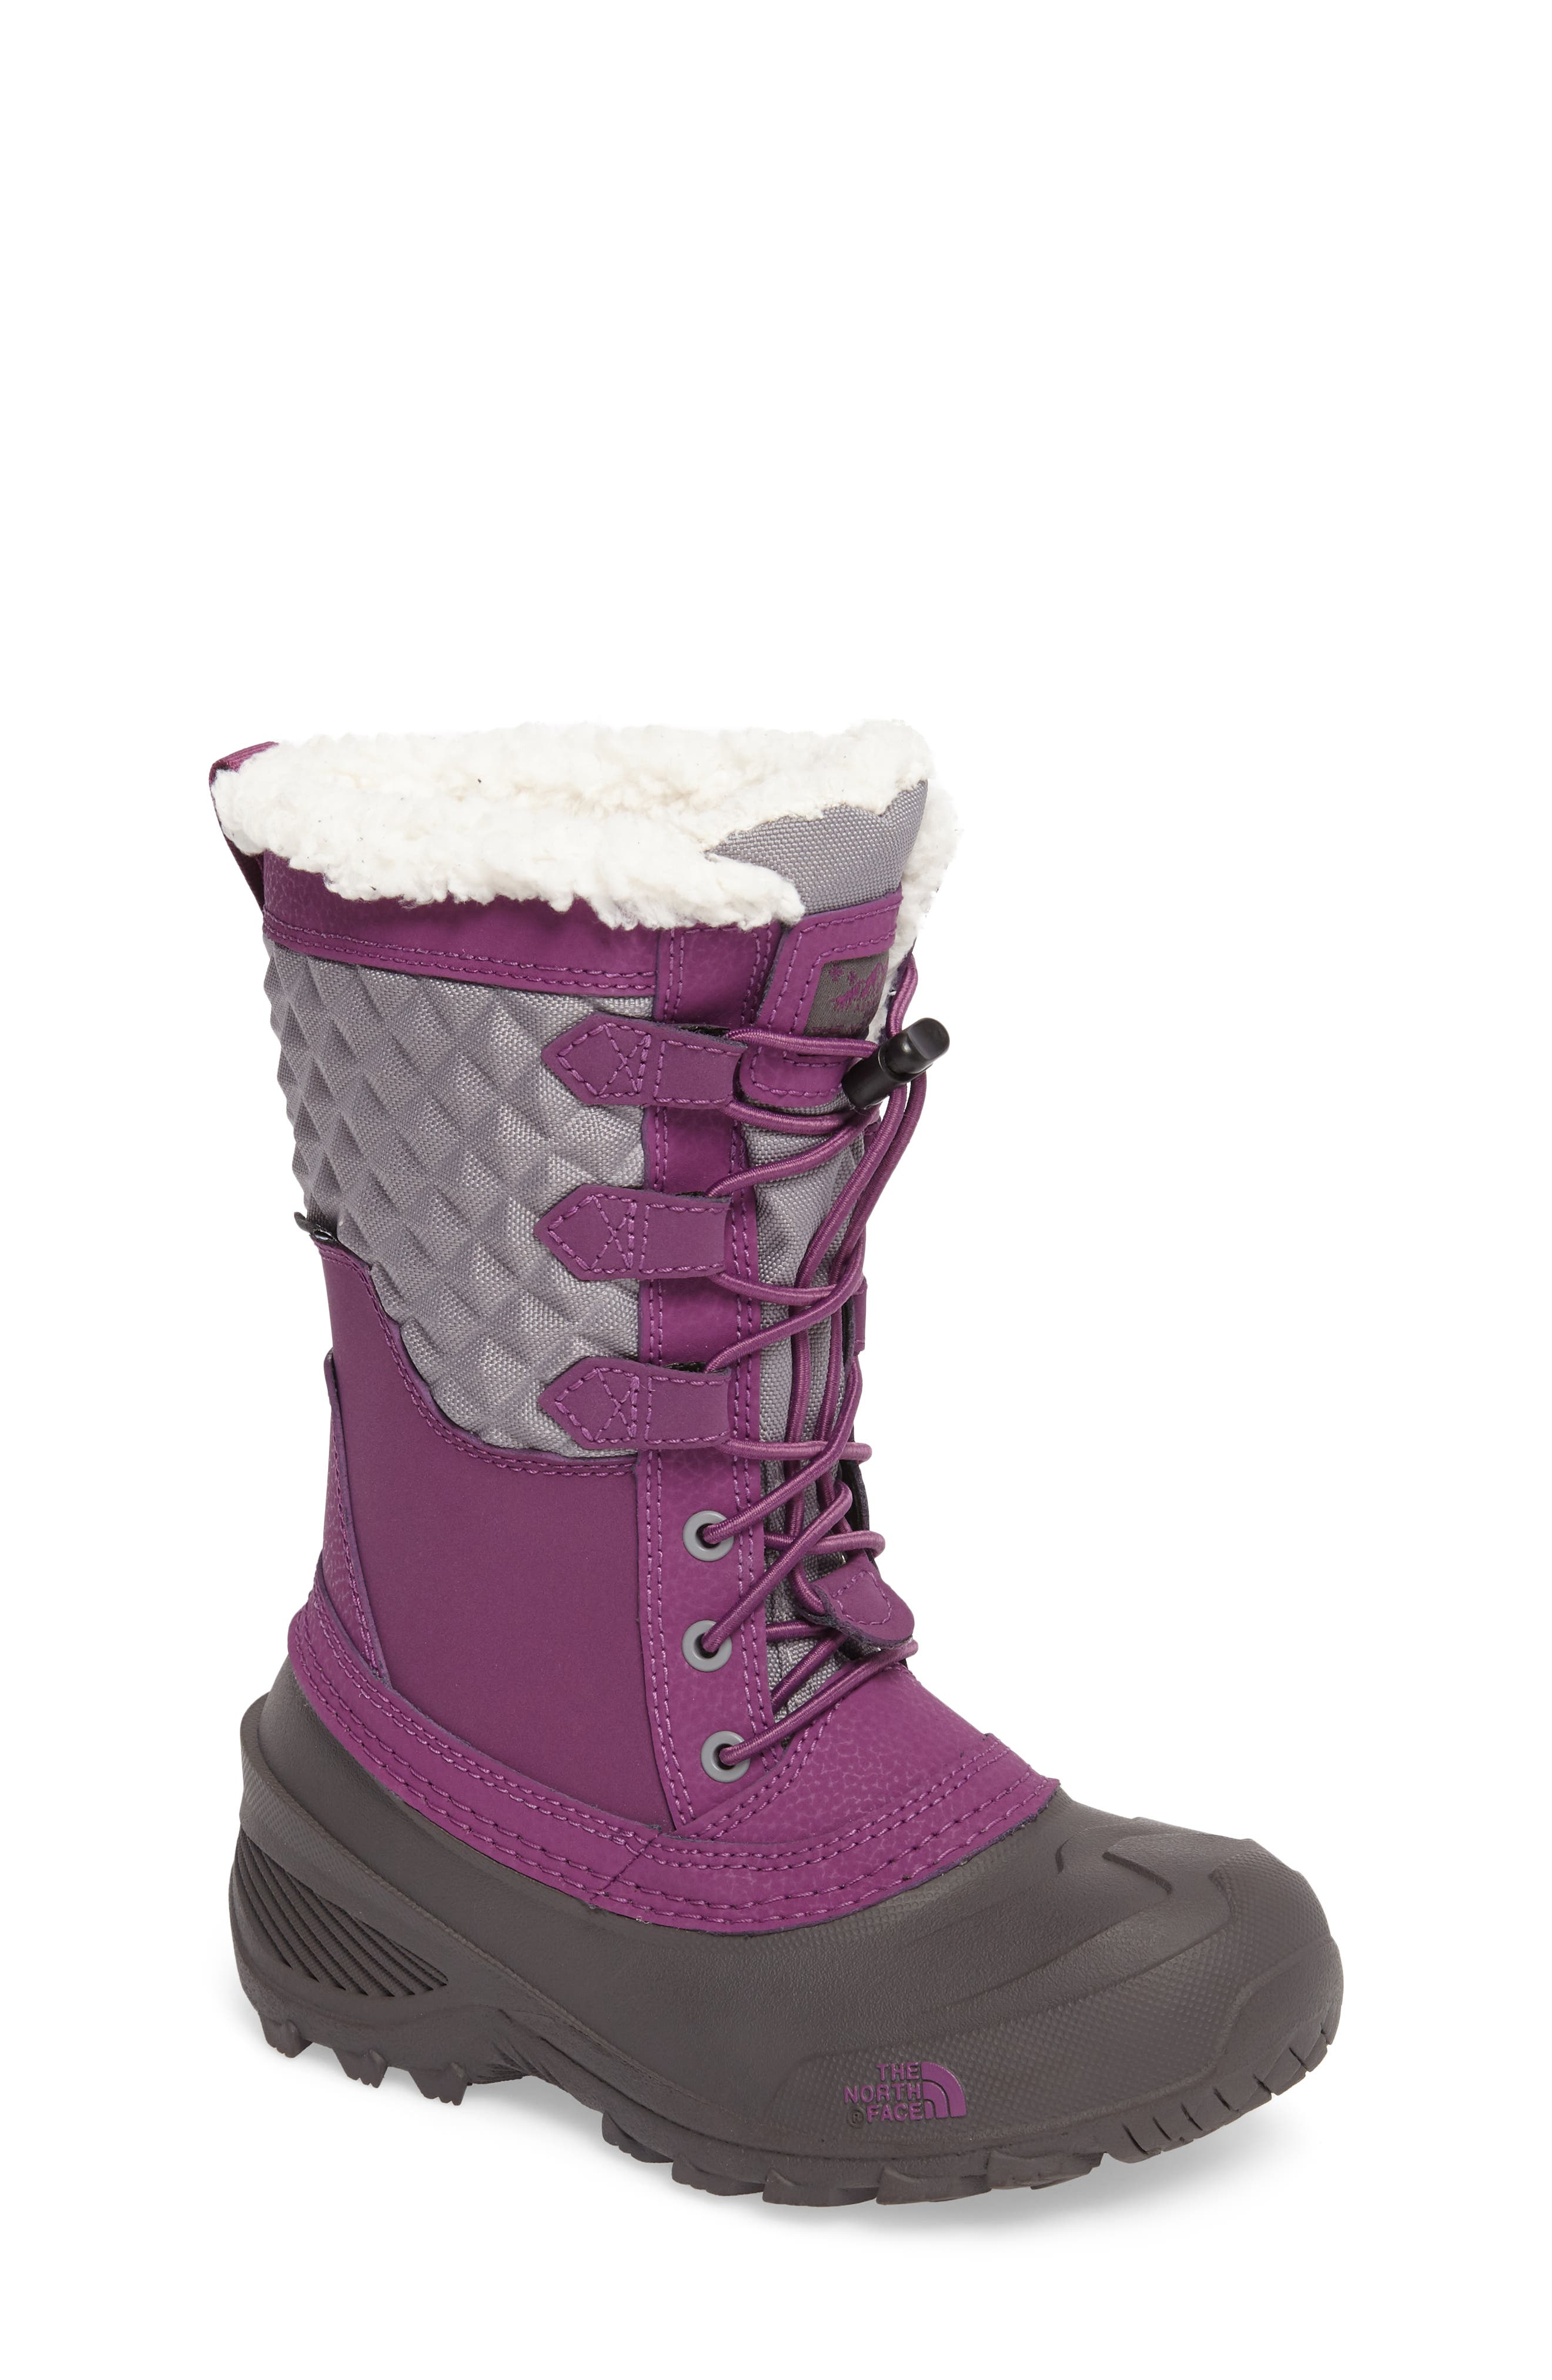 Main Image - The North Face Shellista Lace III Faux Fur Waterproof Boot (Toddler, Little Kid & Big Kid)